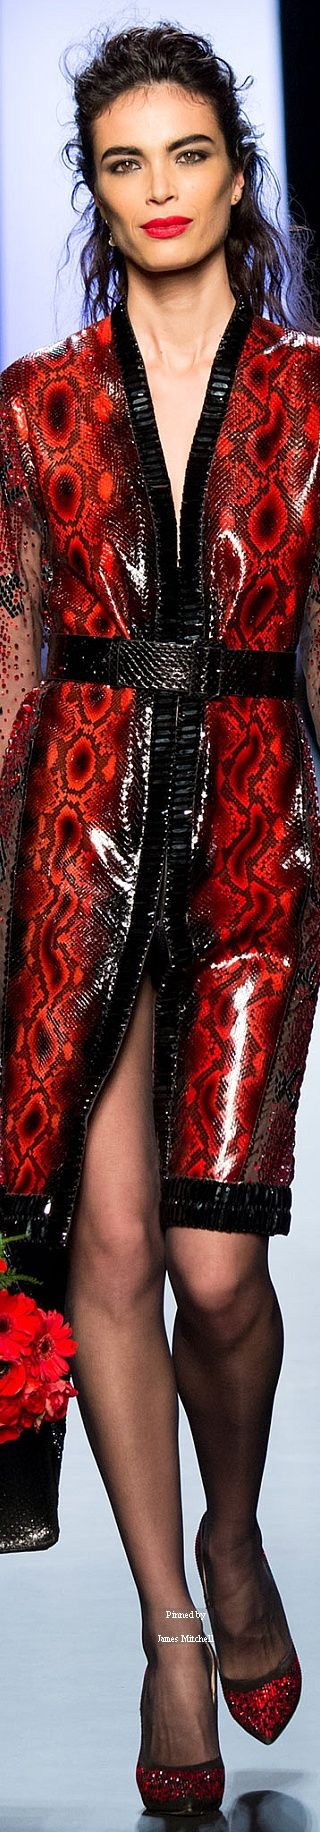 Jean Paul Gaultier Spring 2015 Couture Collection